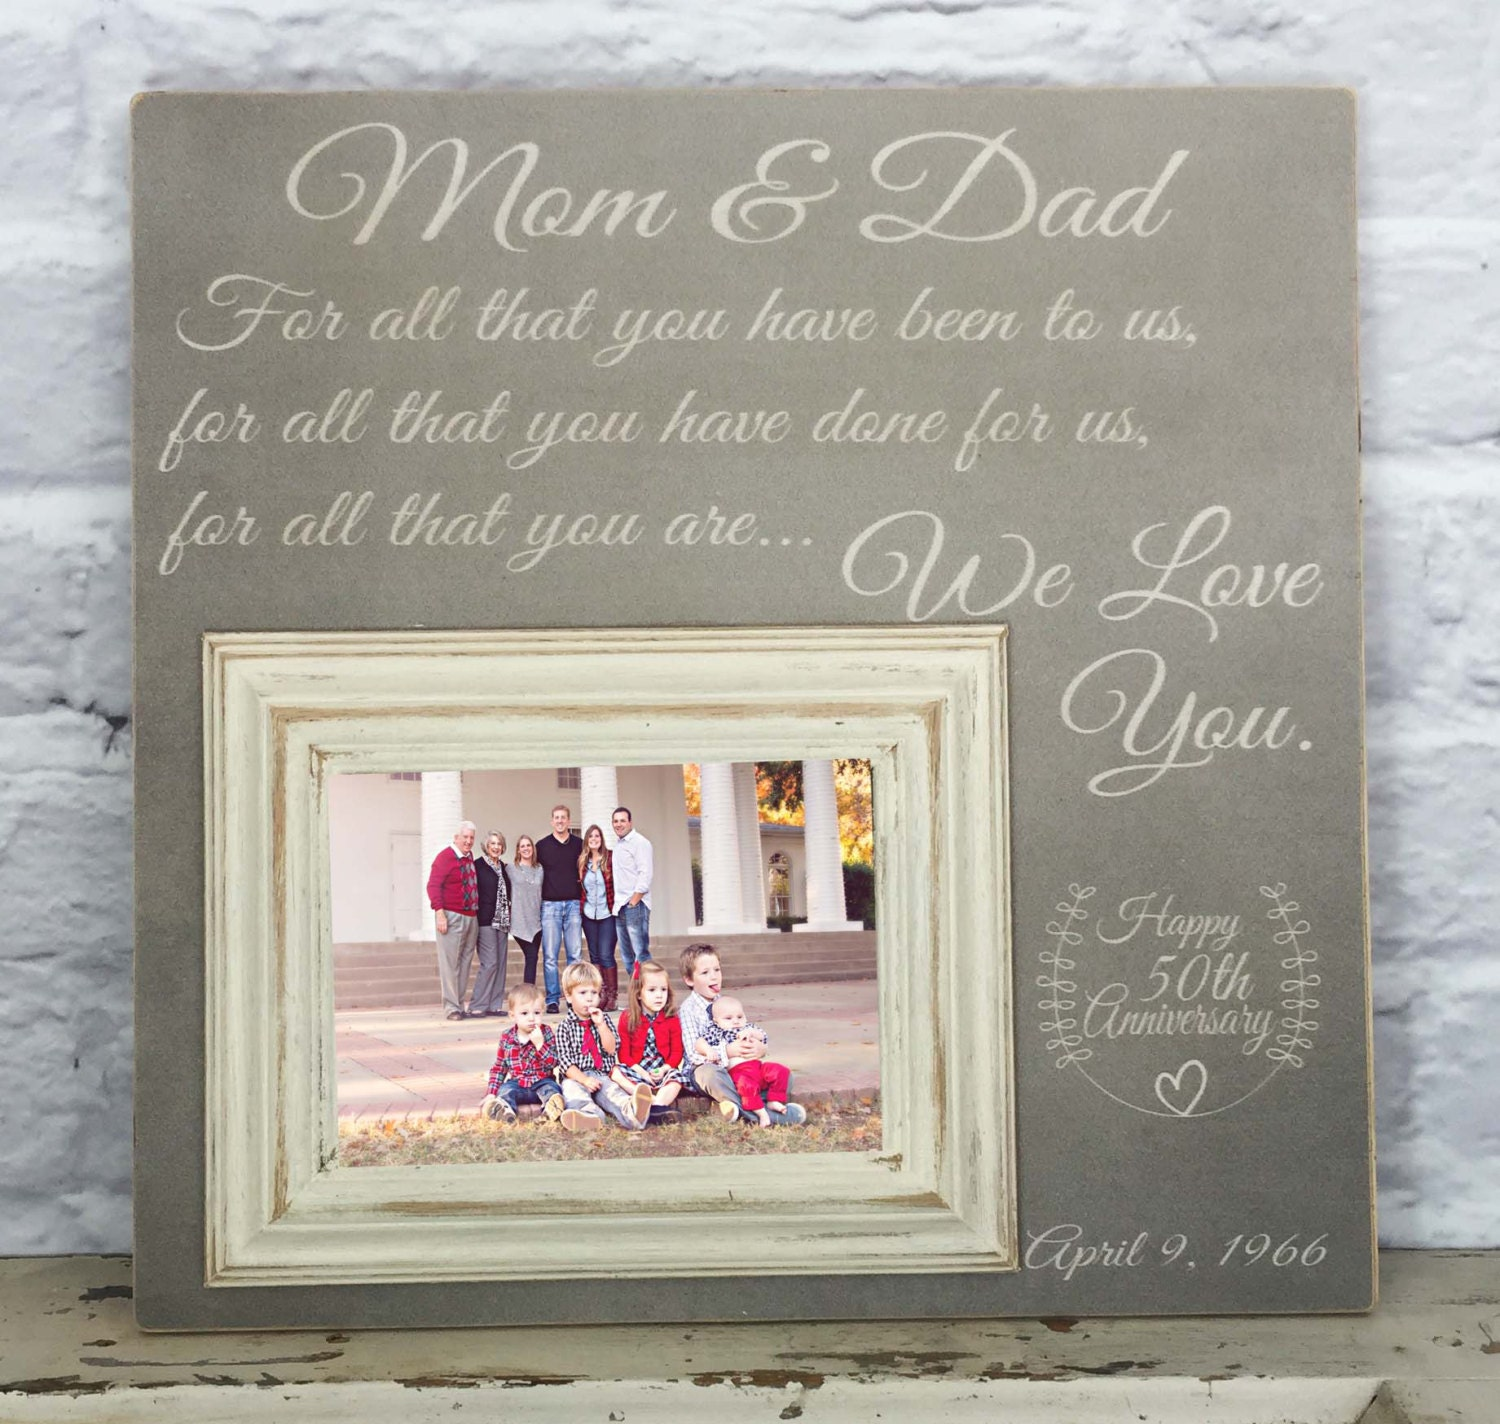 Gift Ideas For A 50th Wedding Anniversary: 50th Anniversary Gift Picture Frame 50th Wedding For All That